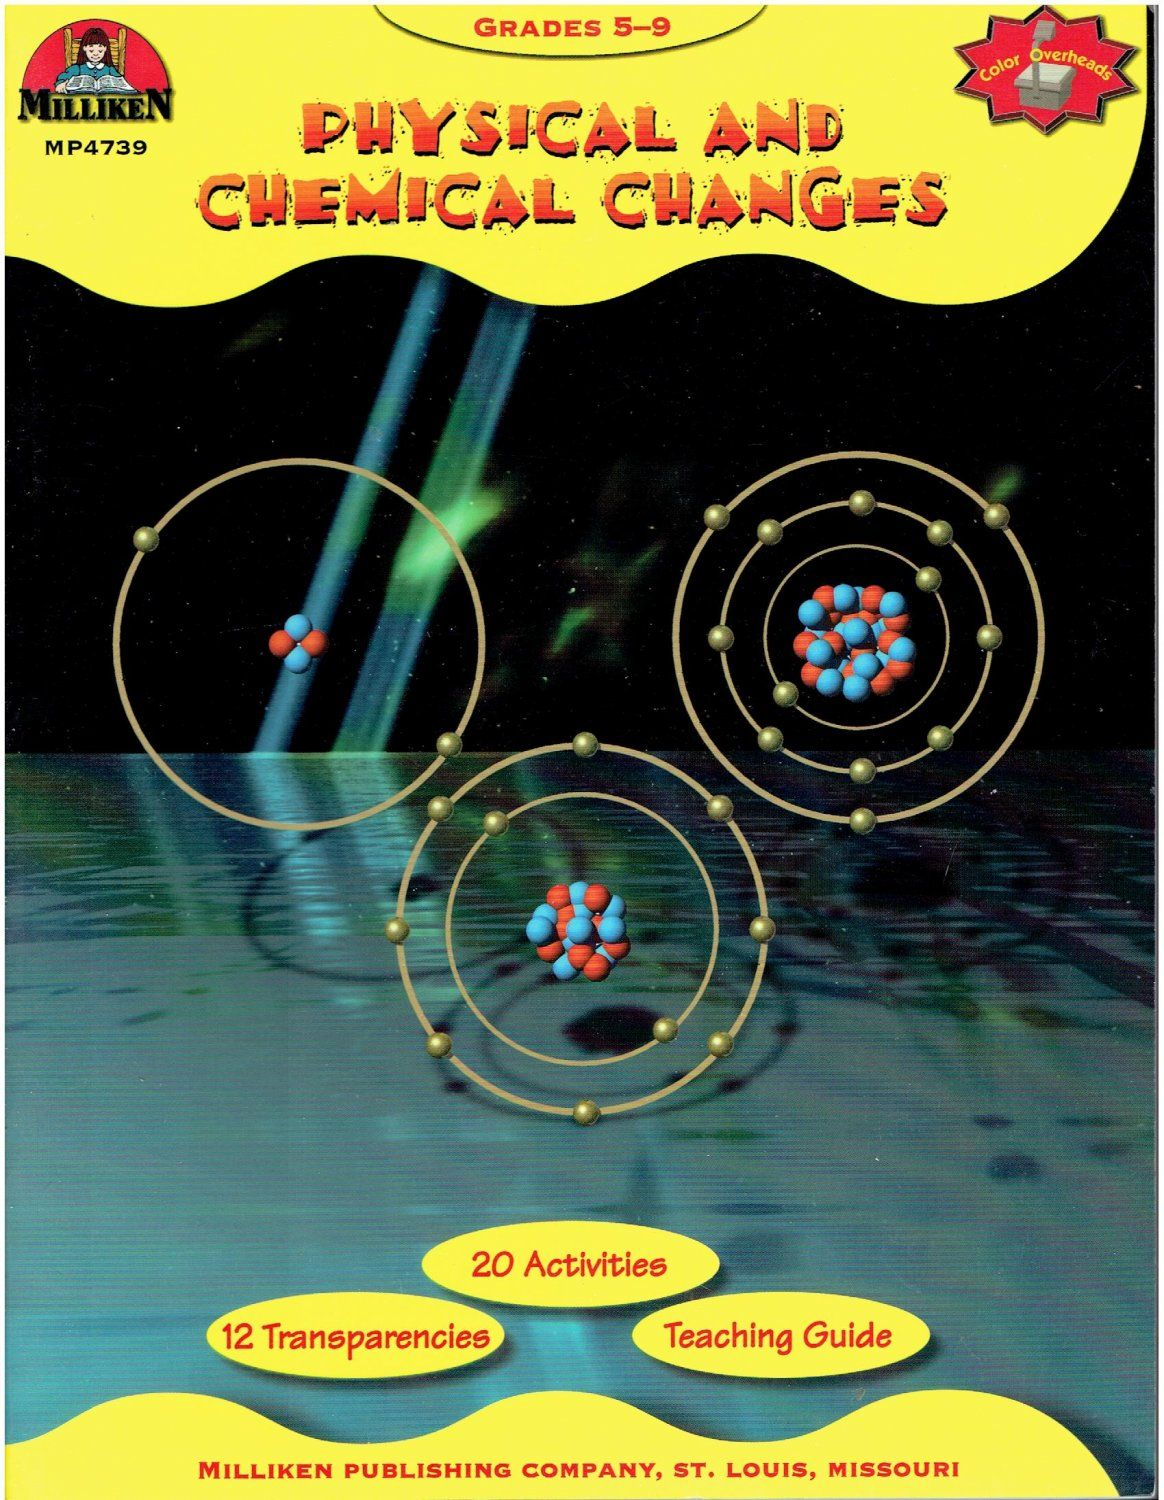 Physical and Chemical Changes Grade 5-9 Milliken MP 4739 workbook ...